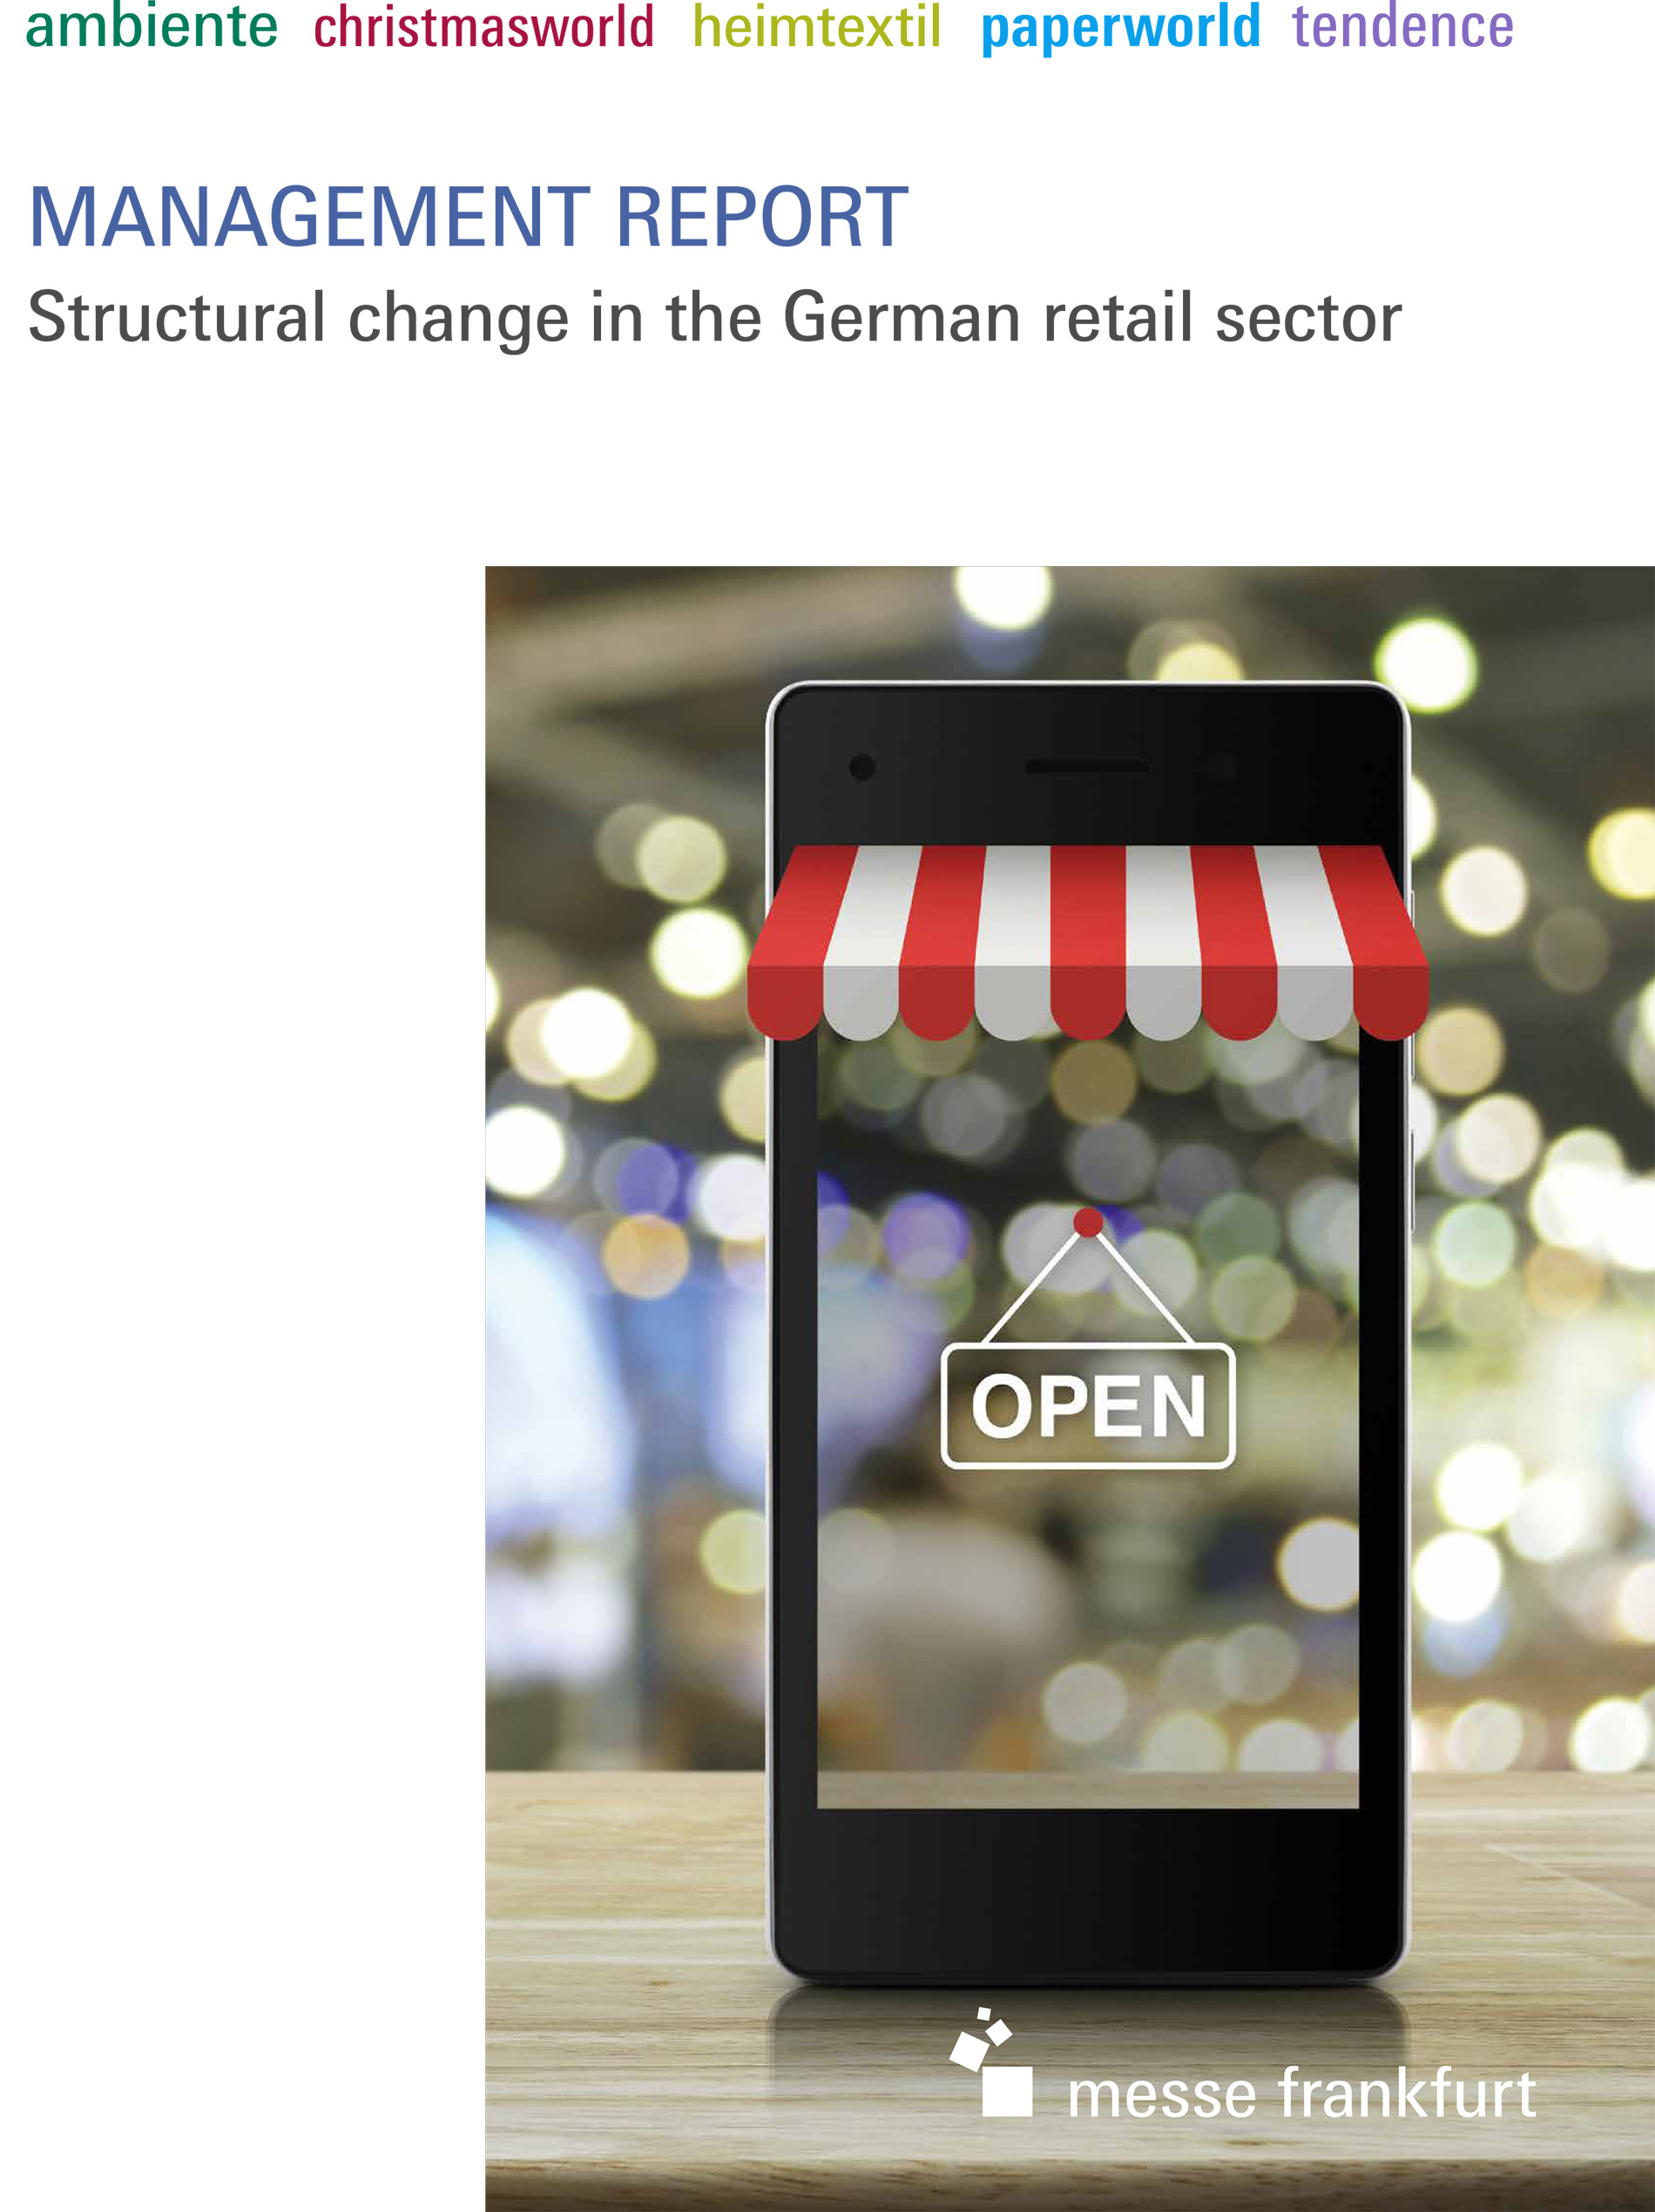 Management Report (Structural change in the German retail sector) Cover